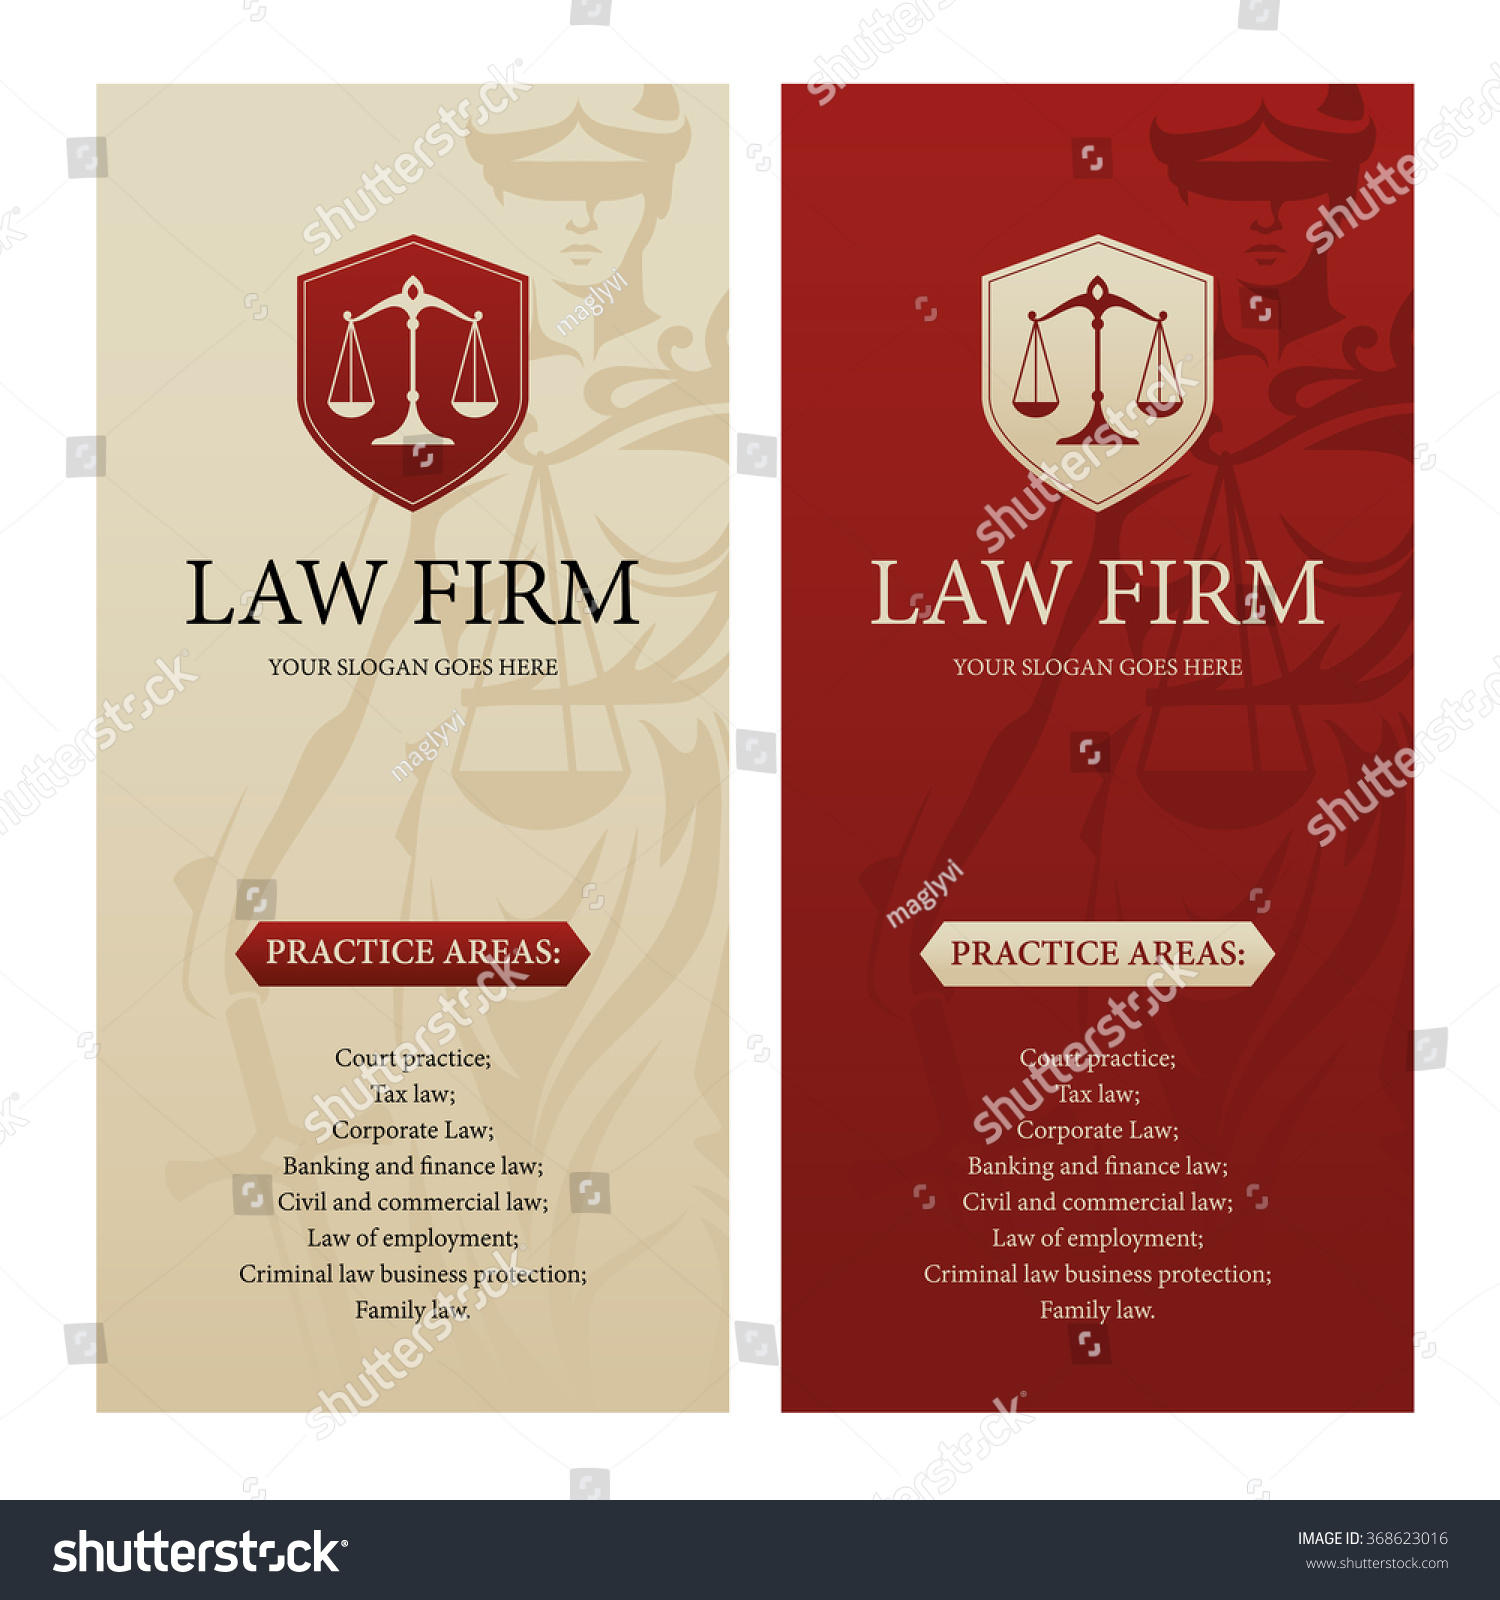 Vertical design template law office firm stock vector for Law firm brochure template